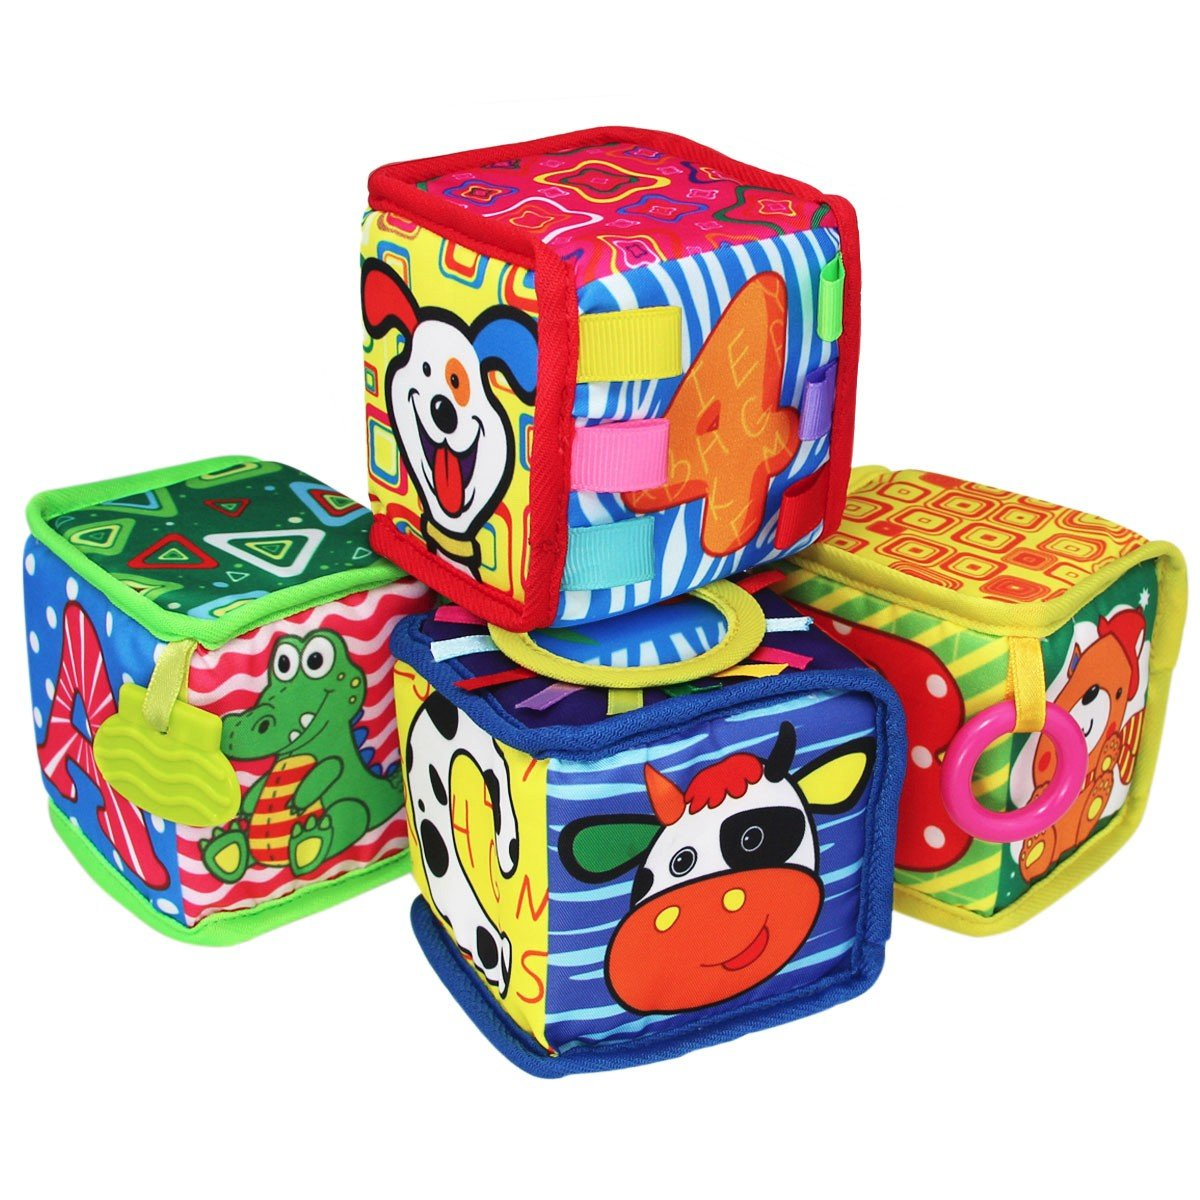 TEYTOY 4pcs Infant Baby Early Education Toys Rattles Velvet Cloth Building Blocks Toy BPA-free for 0-36 Months